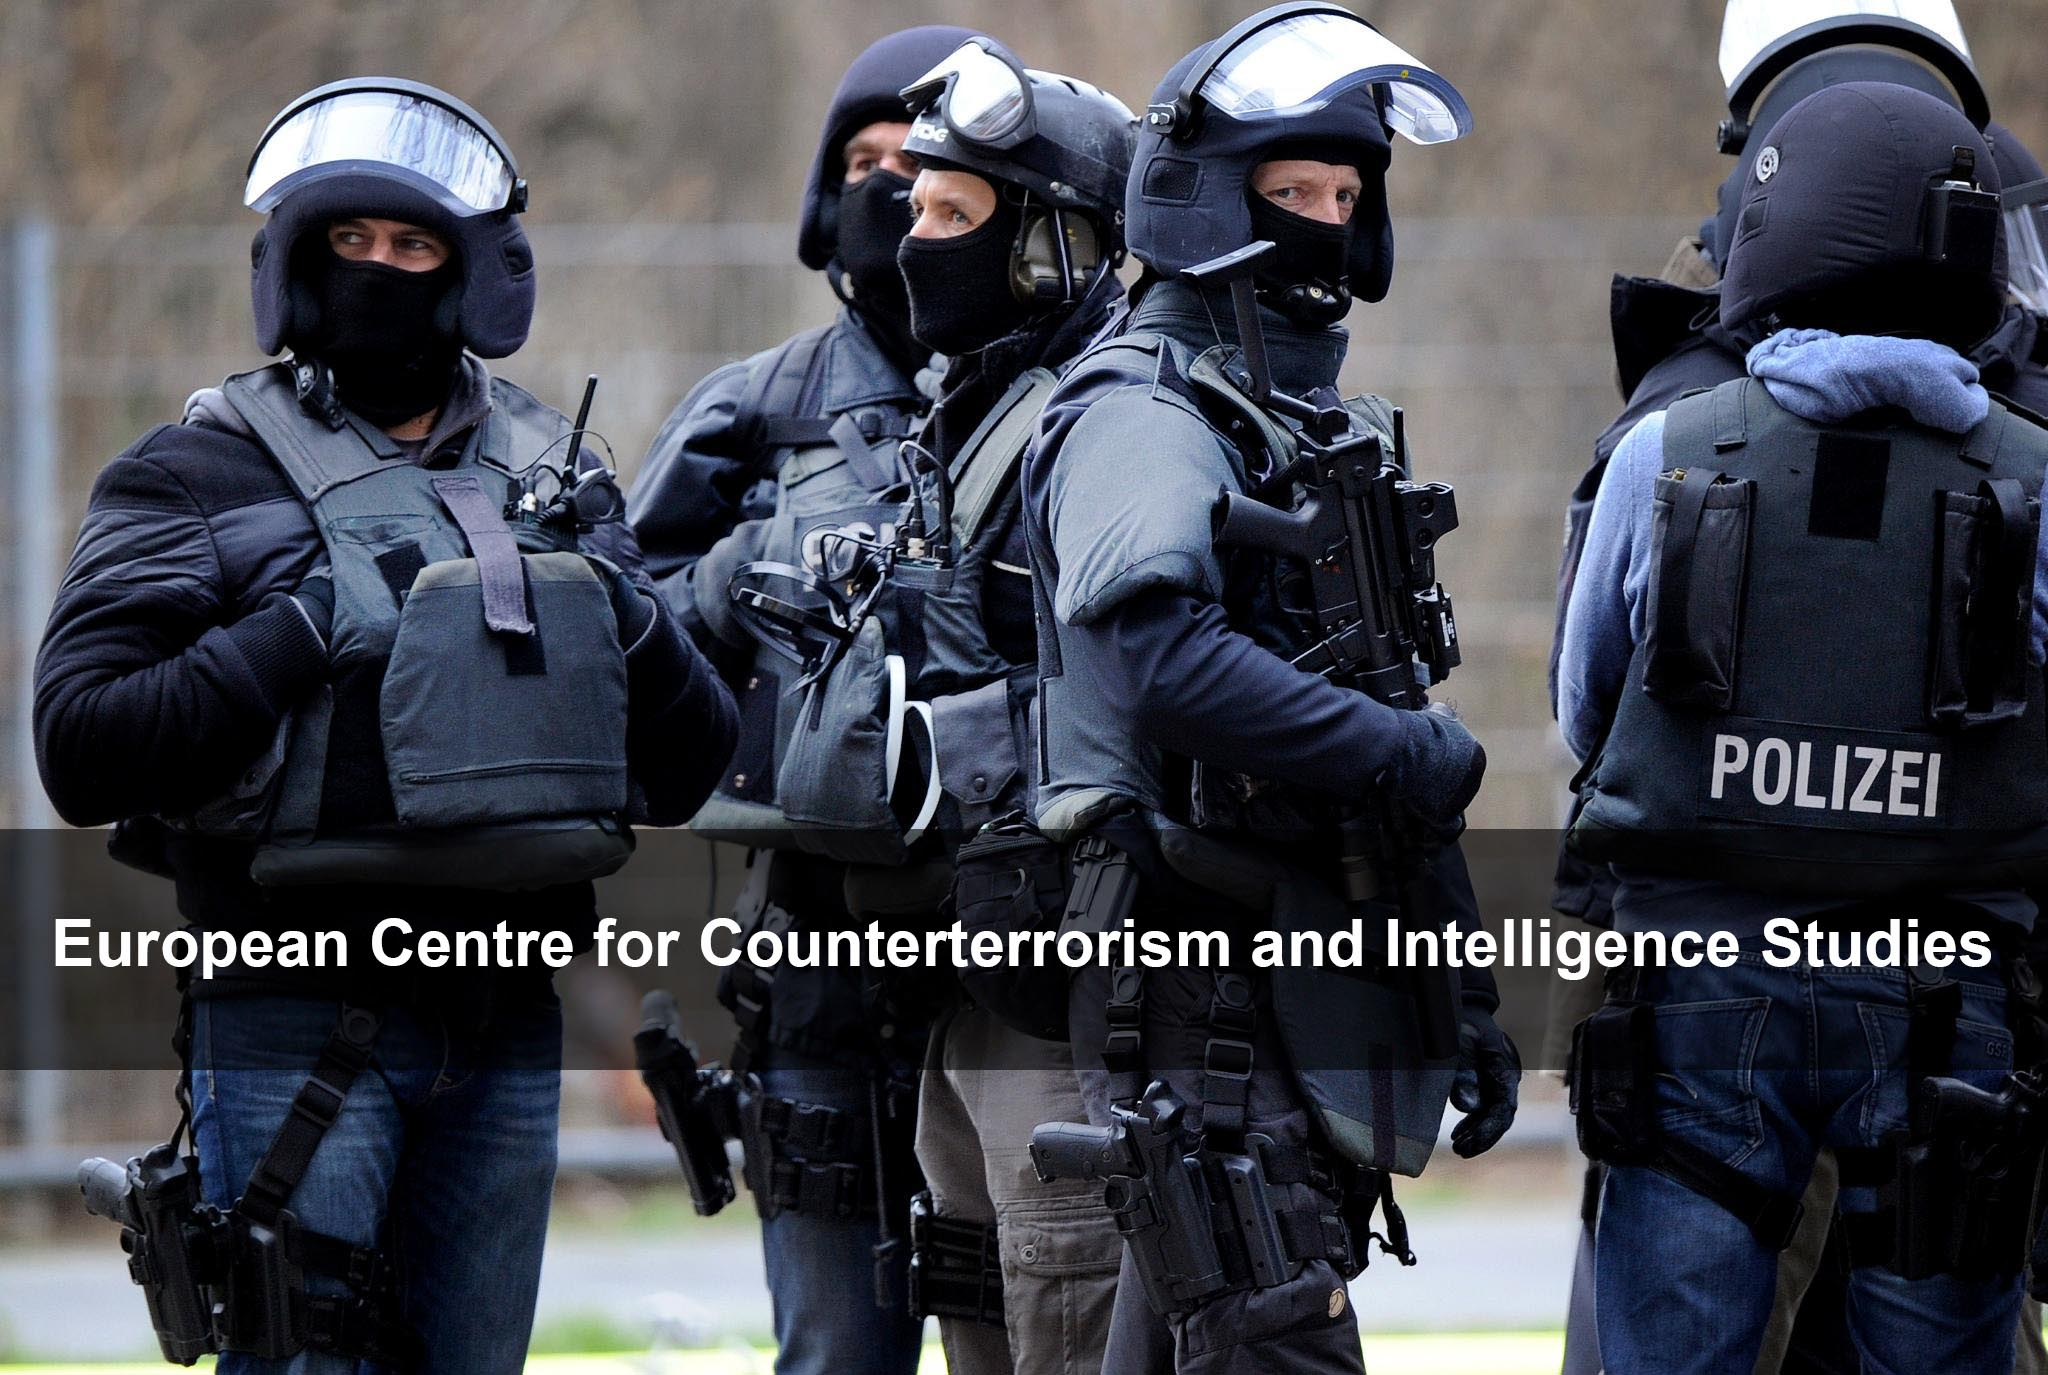 European-Centre-for-Counterterrorism-and-Intelligence-Studies